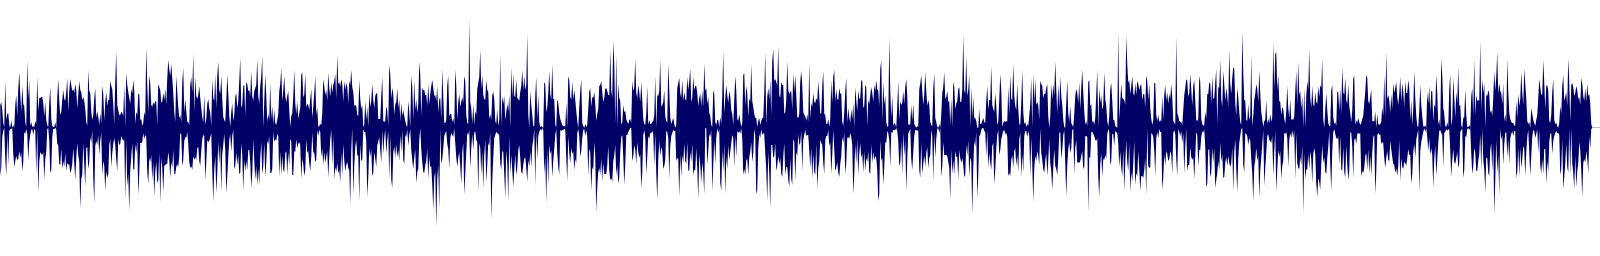 waveform of track #101202